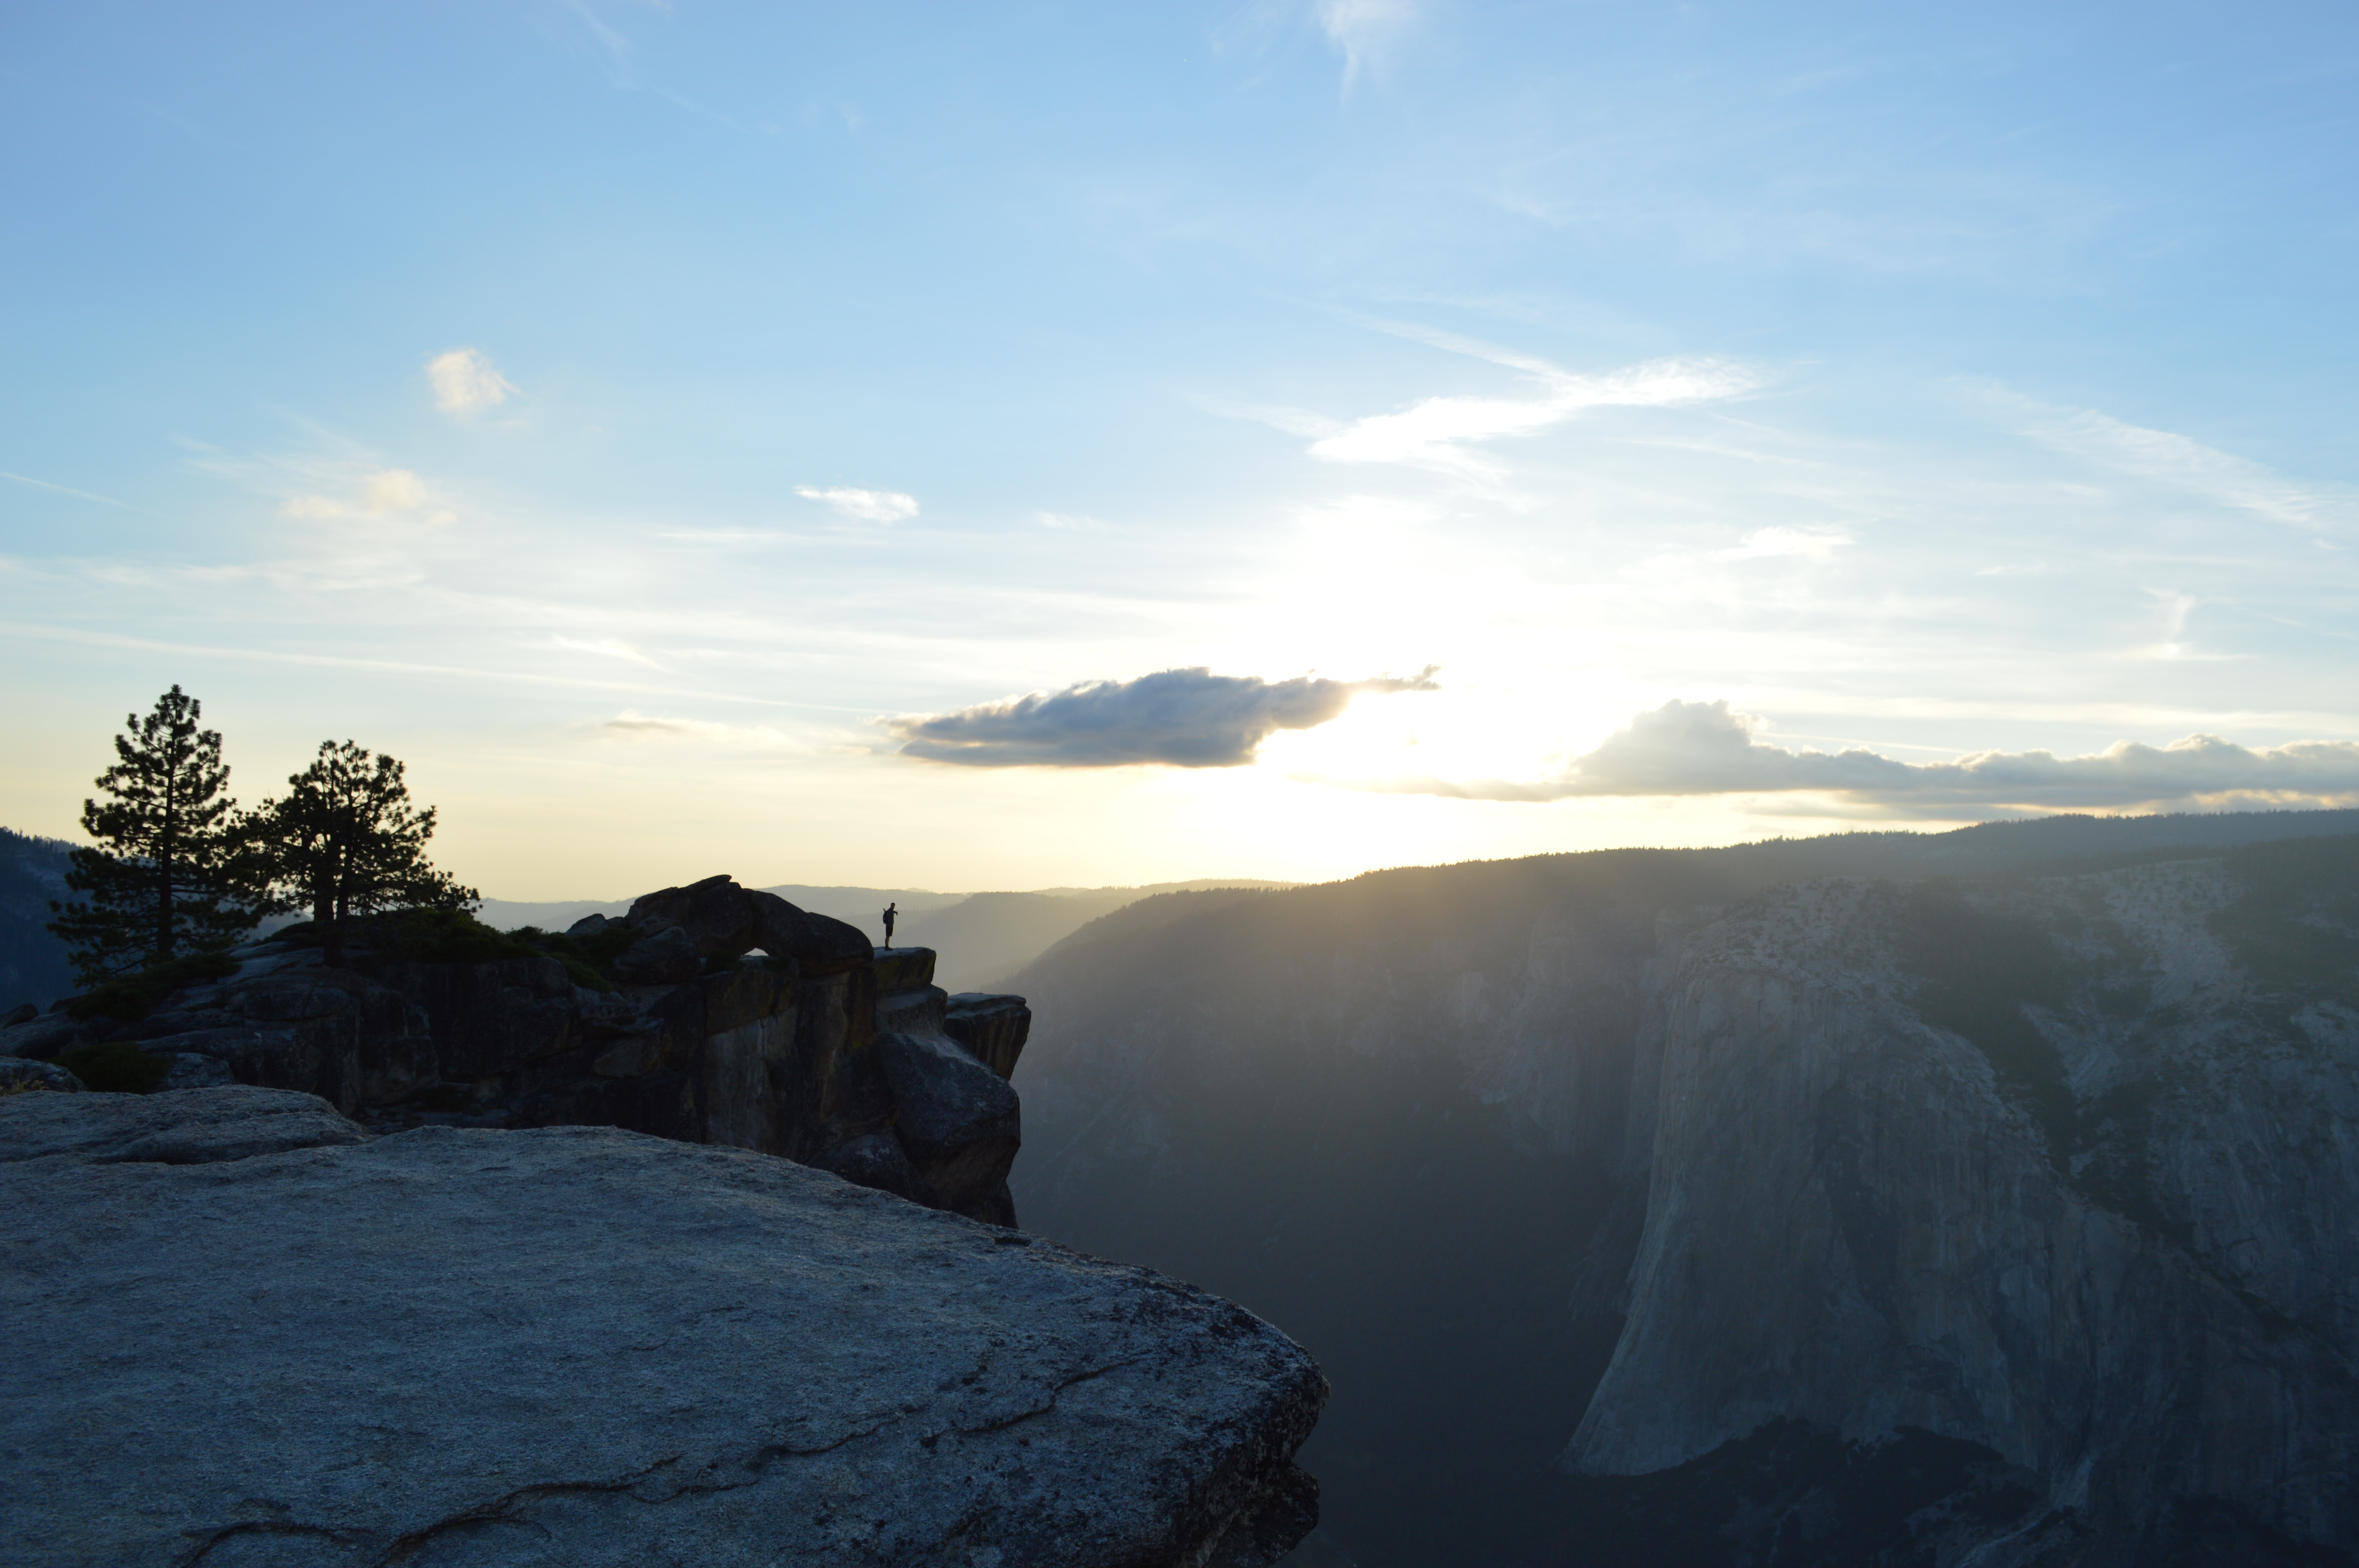 A distant shot of a silhouette of a person standing on a rocky ledge over Yosemite Valley